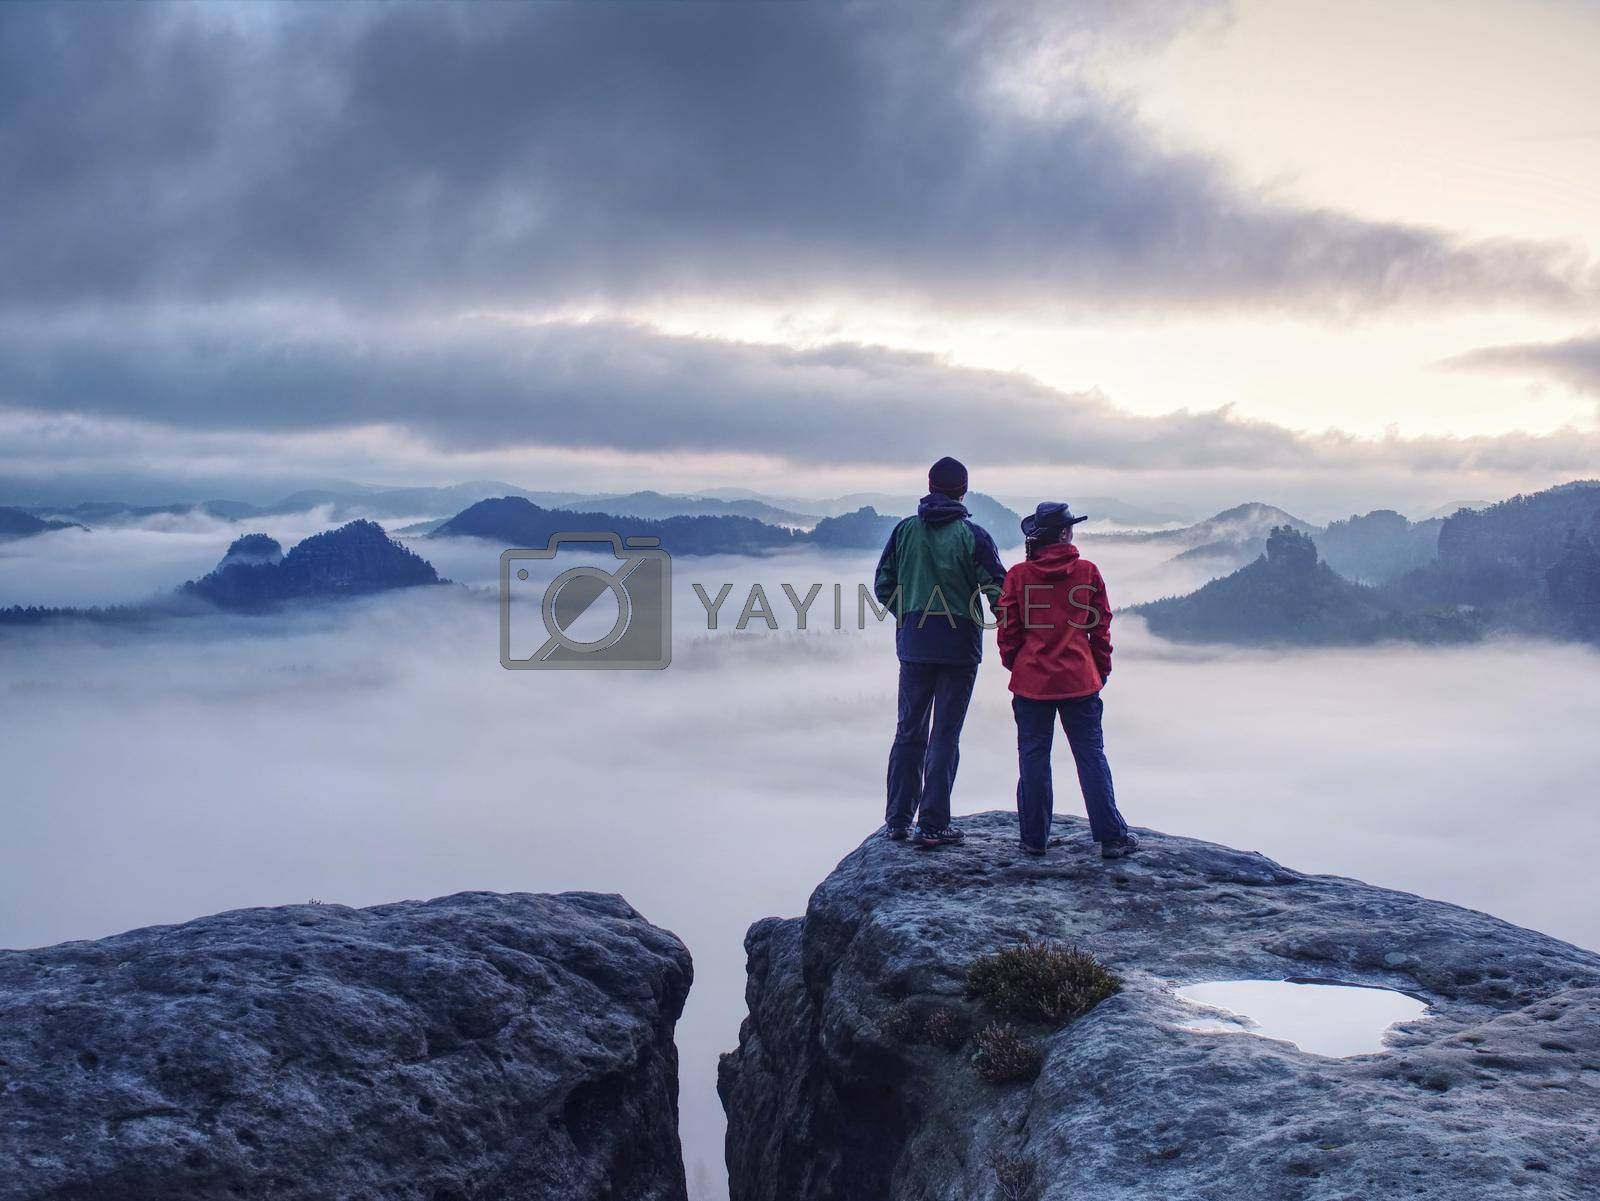 Romantic date in misty mountains. Man shows girlfriend something interesting in far distance.